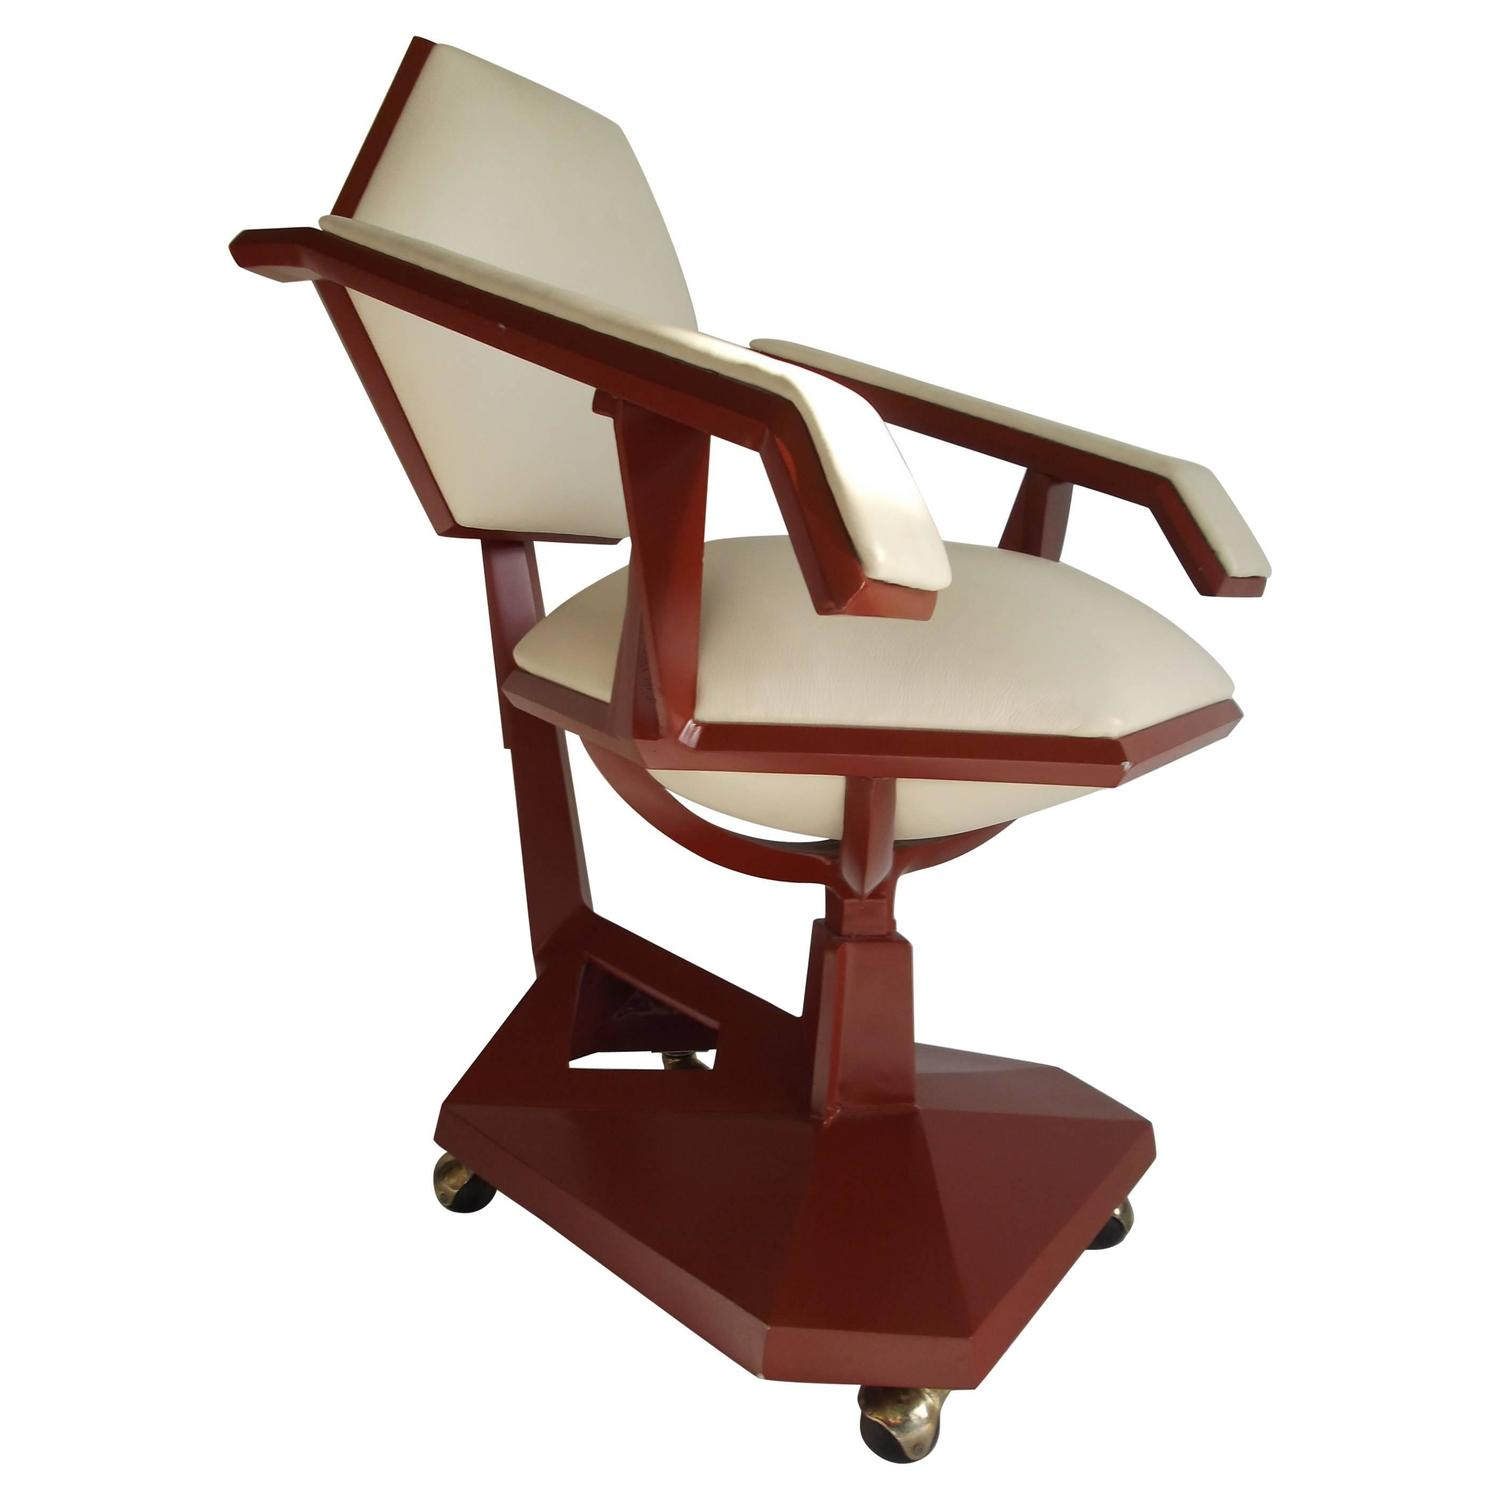 Frank Lloyd Wright Chairs Frank Lloyd Wright Price Tower Secretary Armchair 1955